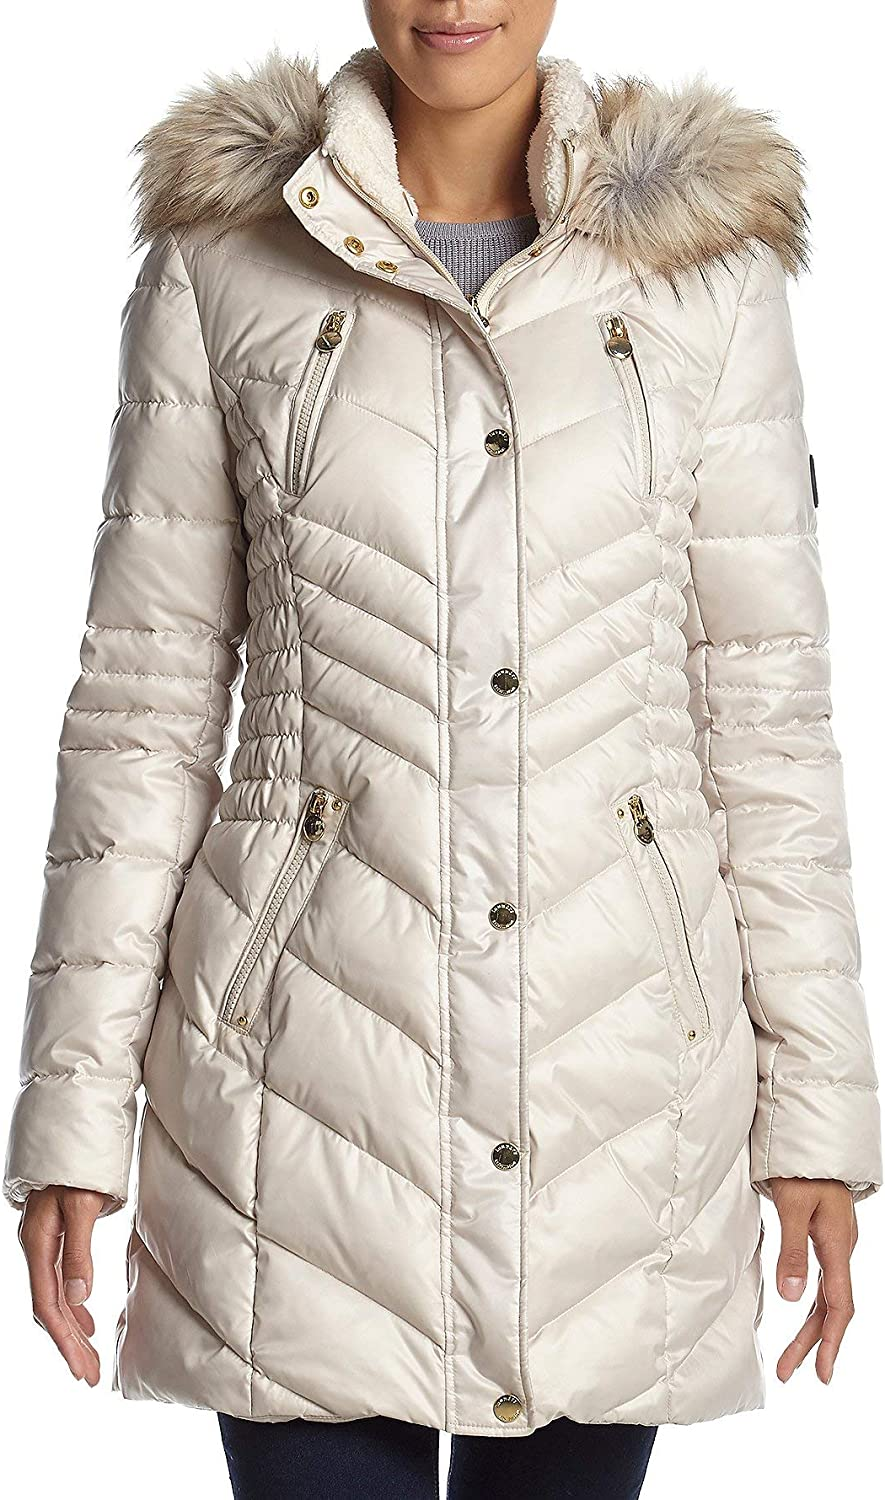 Laundry by Shelli Segal Faux Fur Trim Sherpa Hooded Cinched Waist Puffer Coat